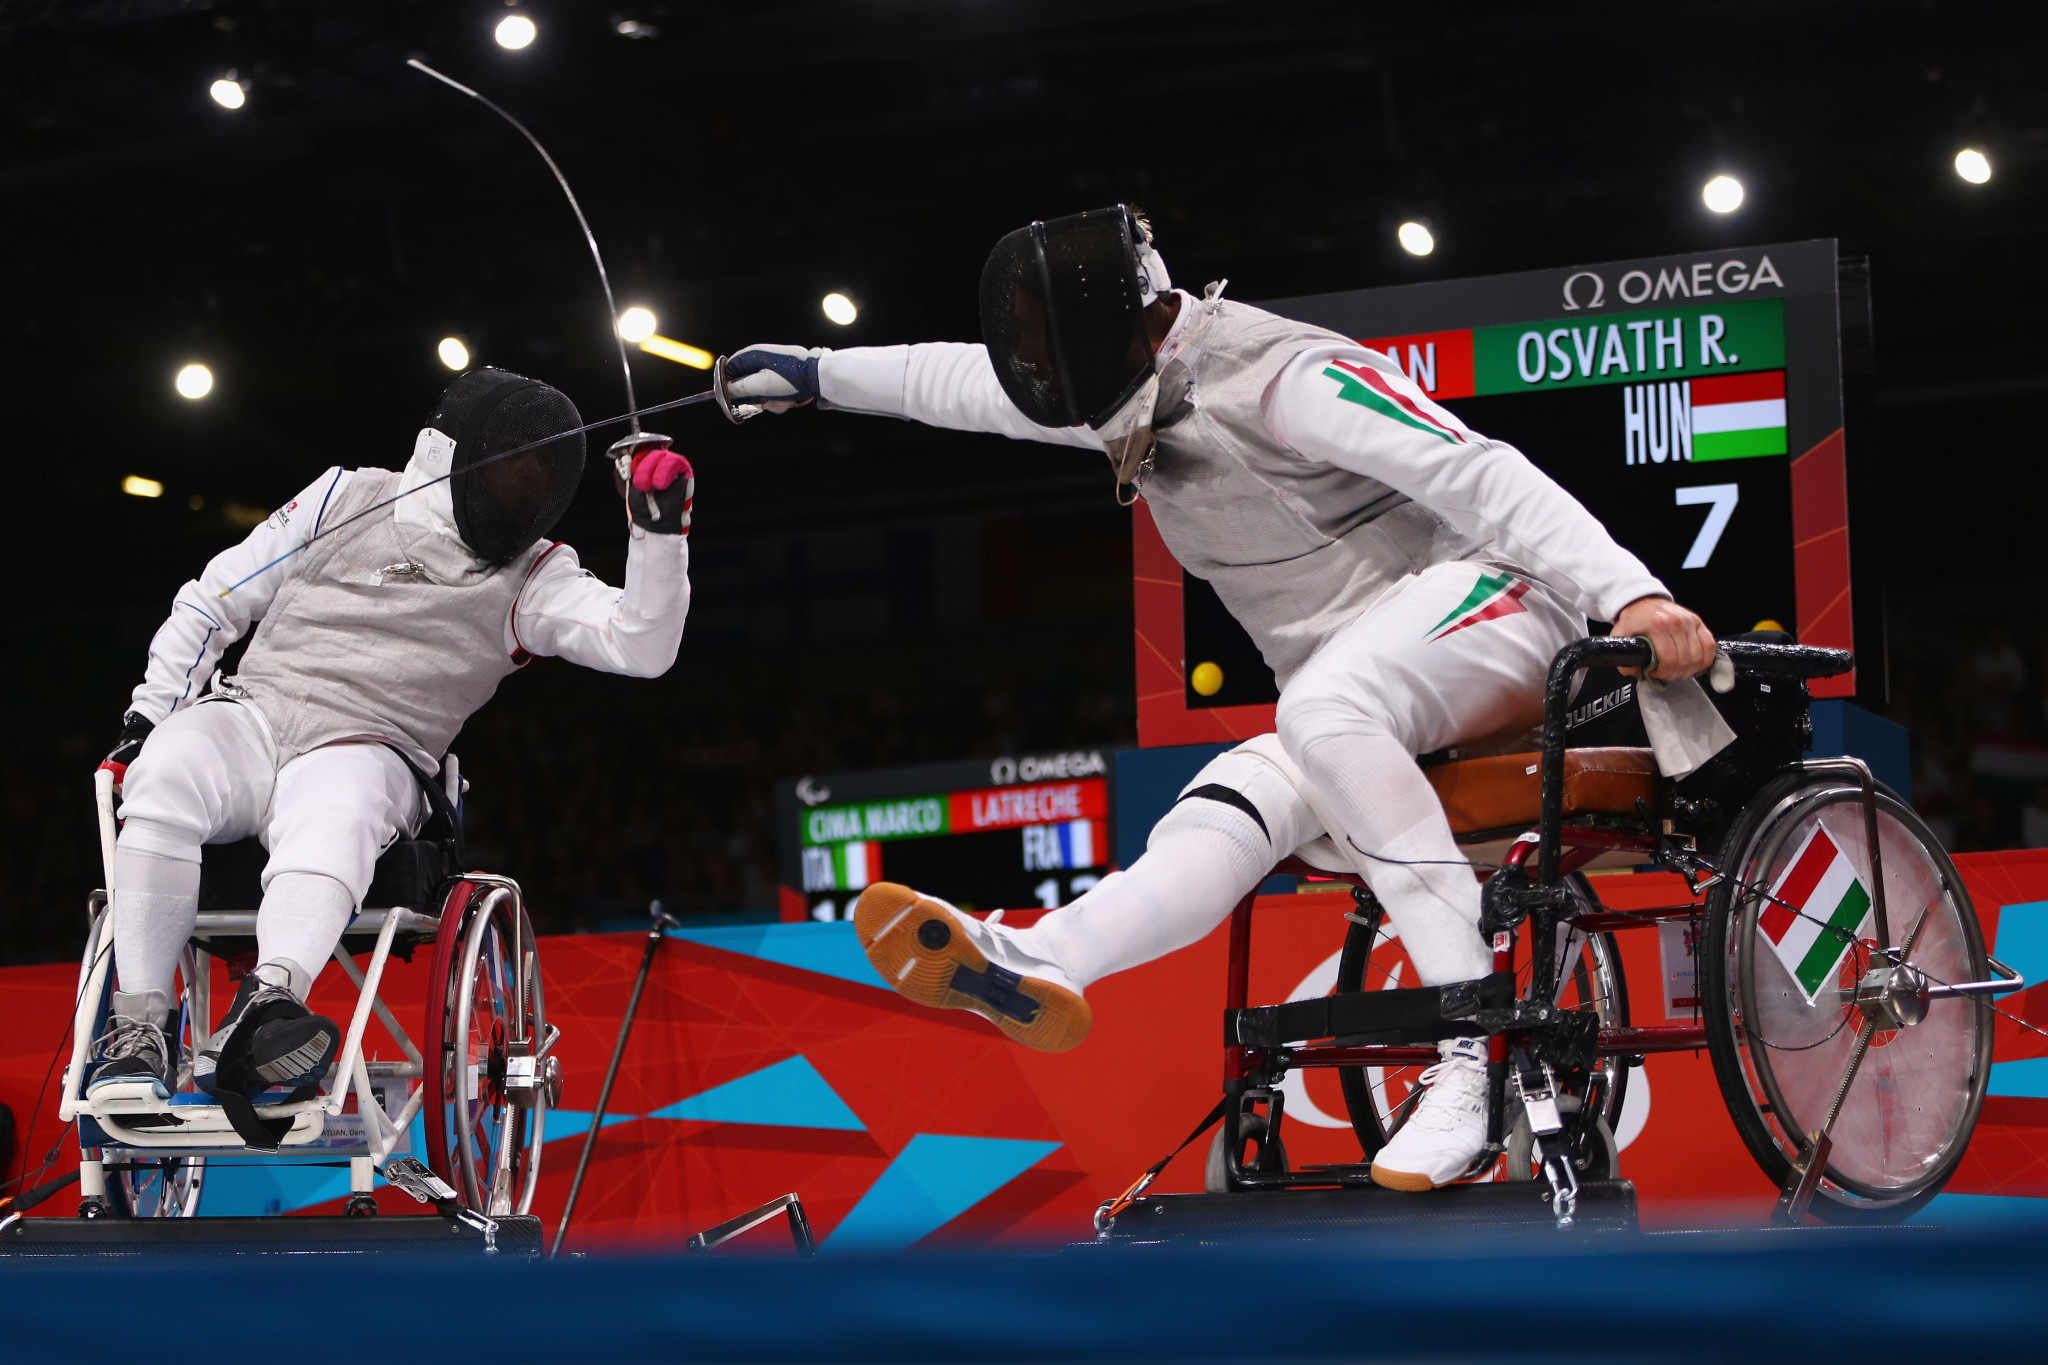 Wheelchair fencing one of three sports to award medals on first day of Tokyo 2020 Paralympics competition